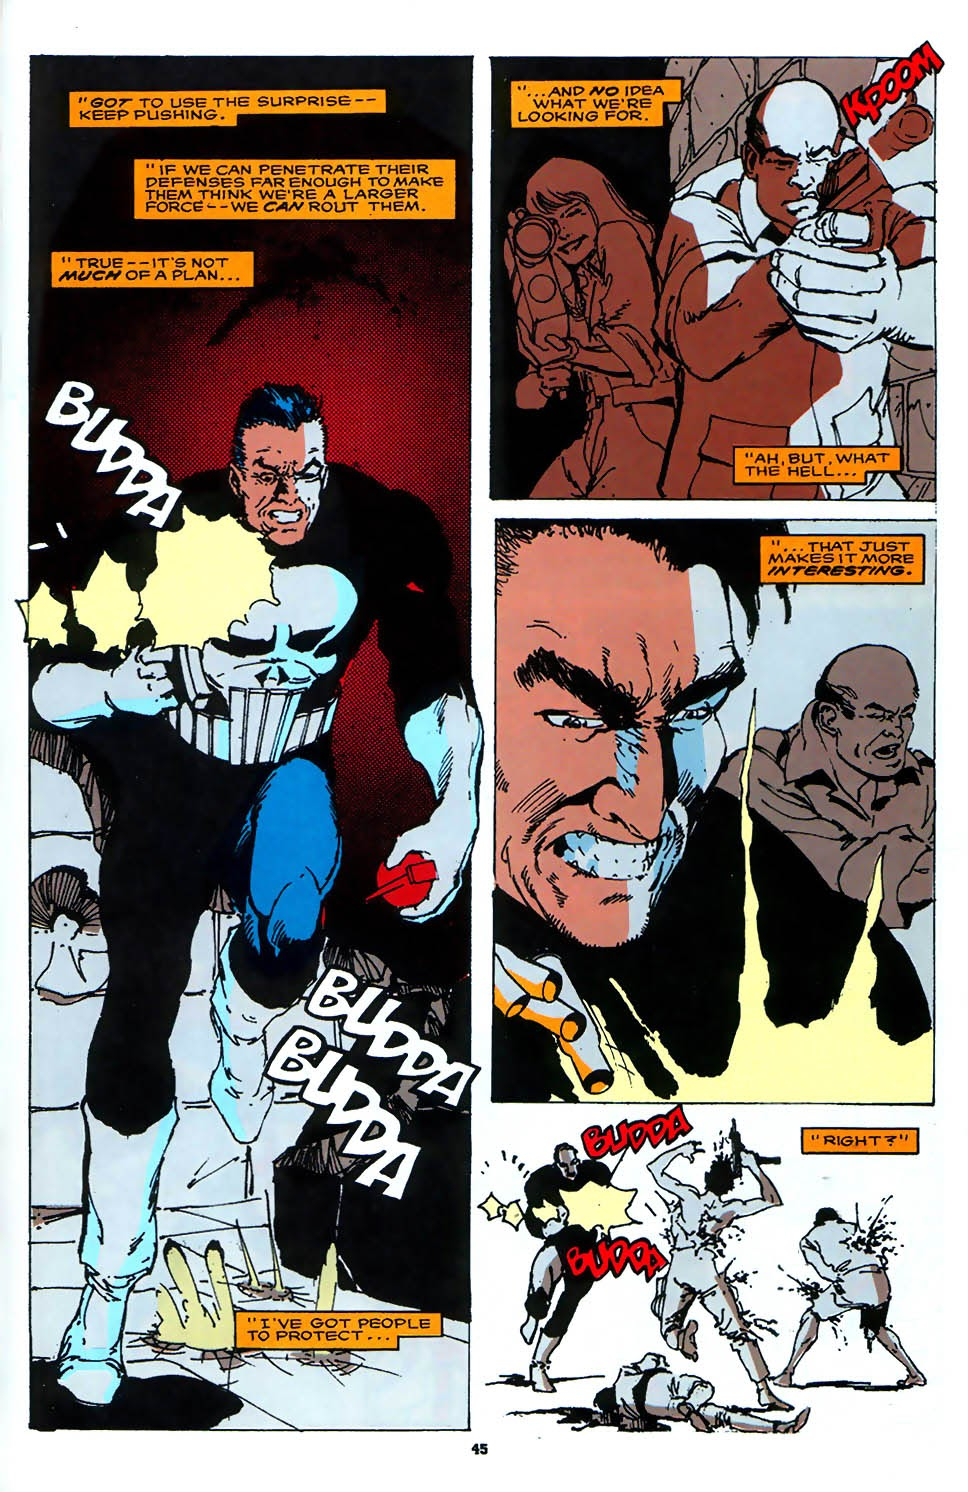 Read online Punisher: The Prize comic -  Issue # Full - 48